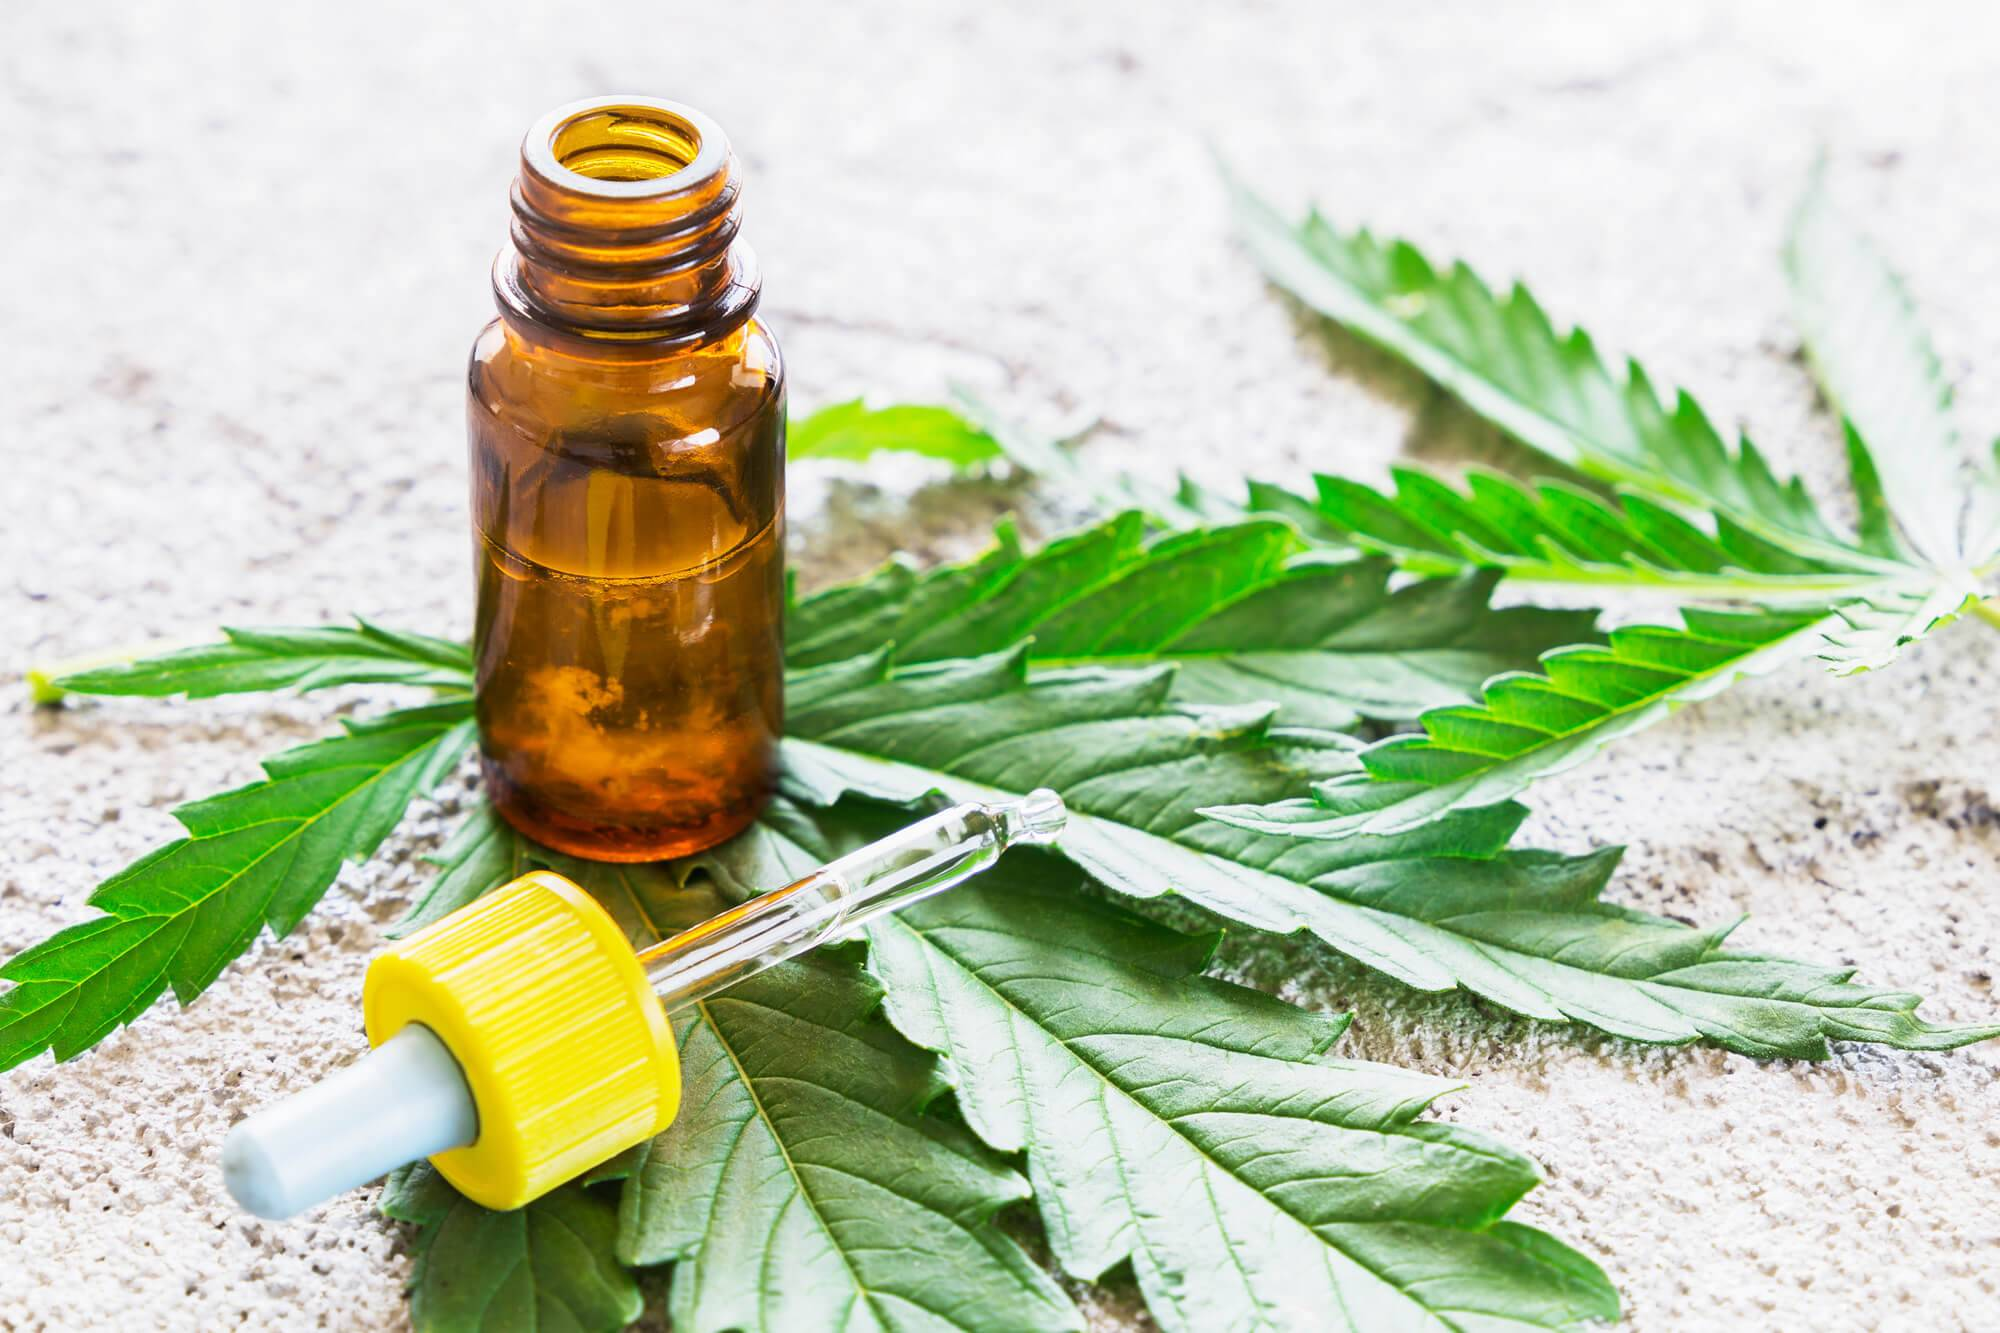 Cannabis oil (kannabiszolaj), you get a series of positive effects on your heart